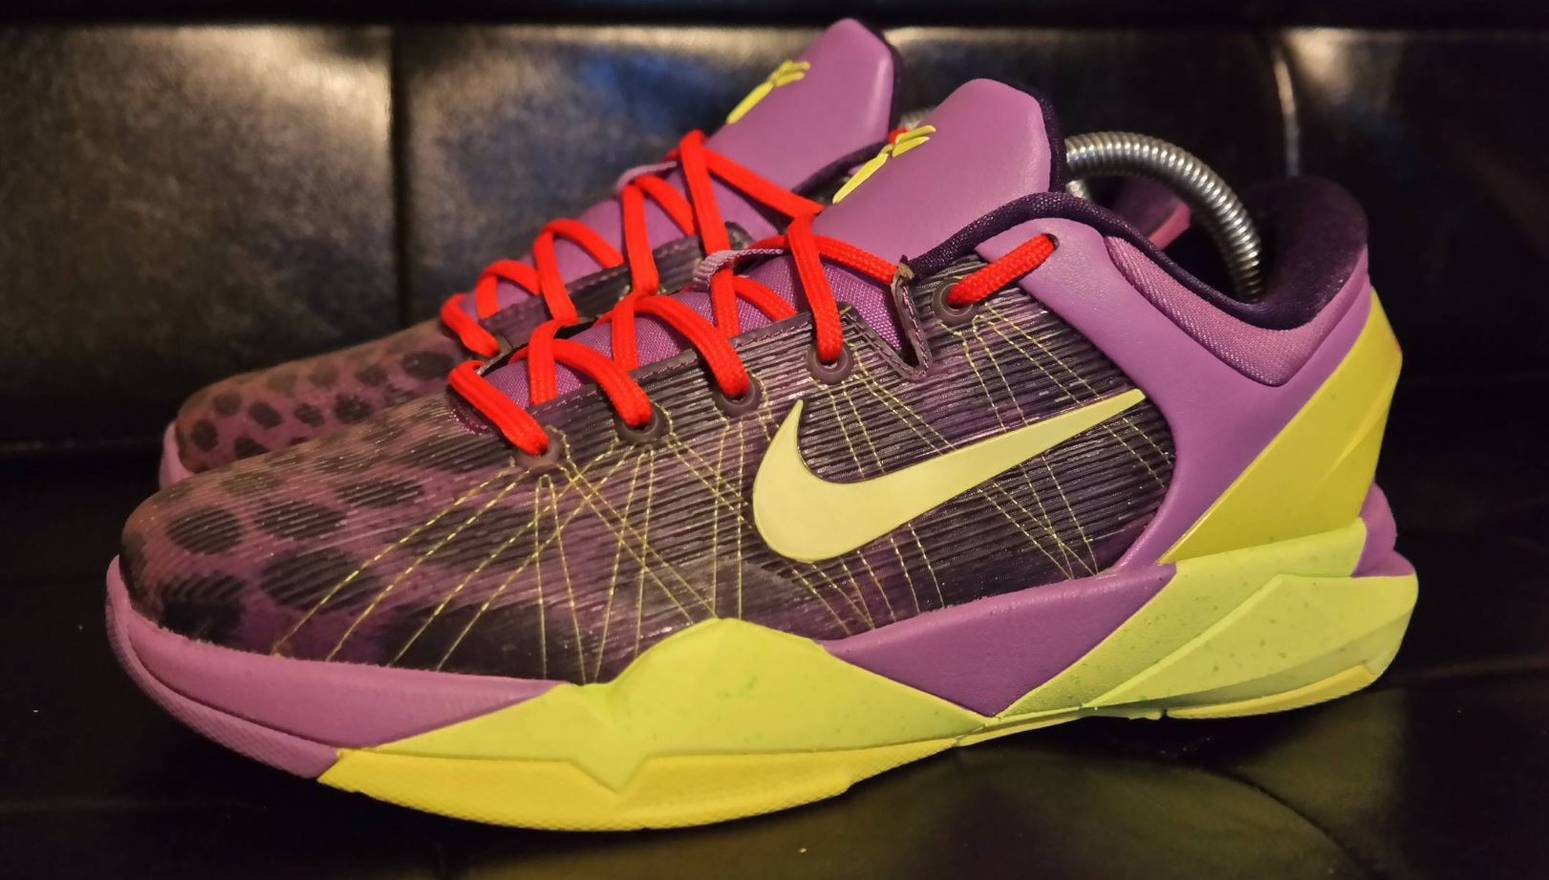 Nike NIKE Kobe 7 Christmas (Leopard) Size 7 - Low-Top Sneakers for ...